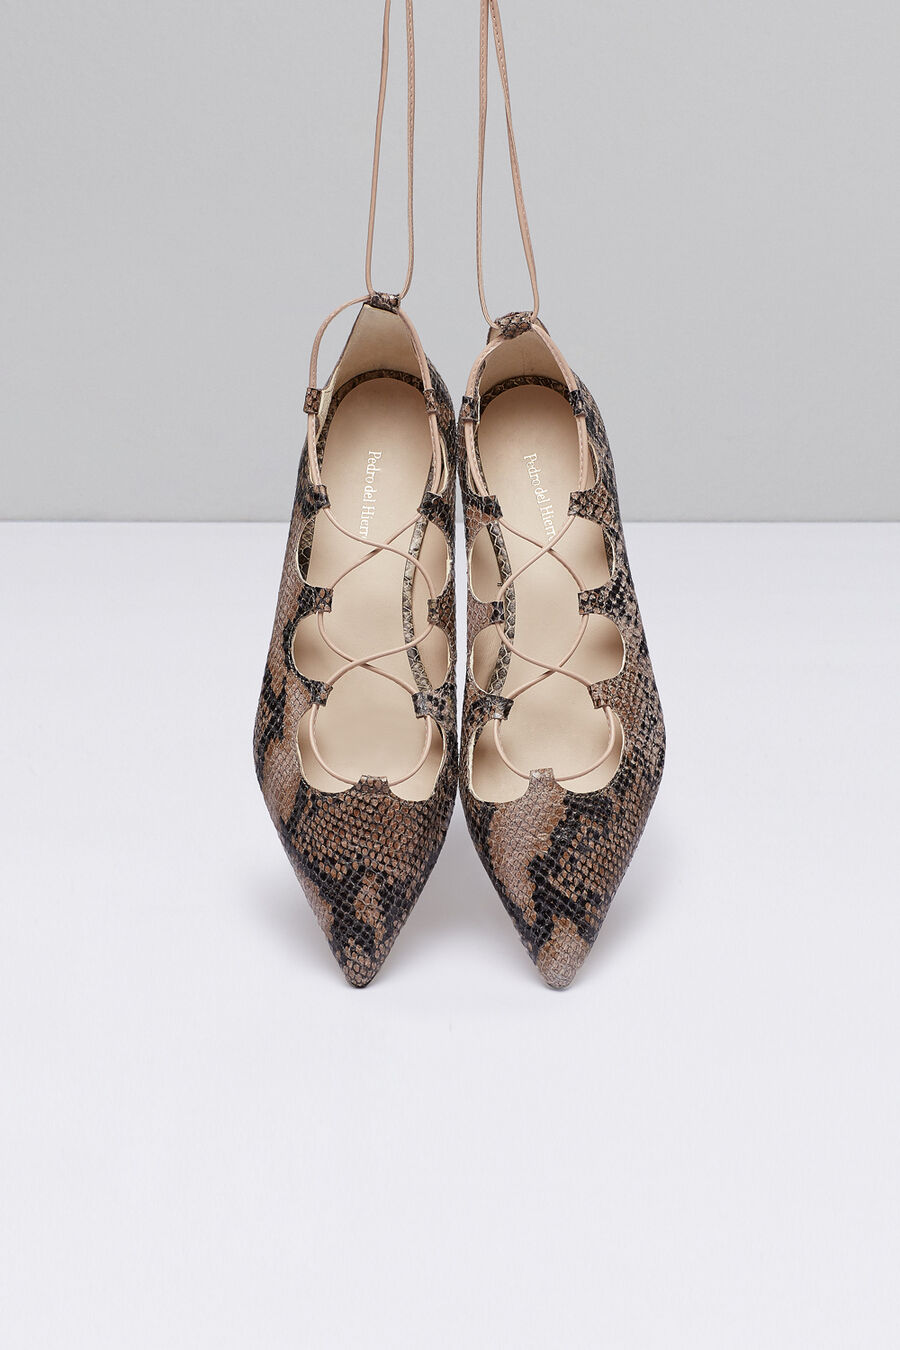 Lace up faux snakeskin shoes